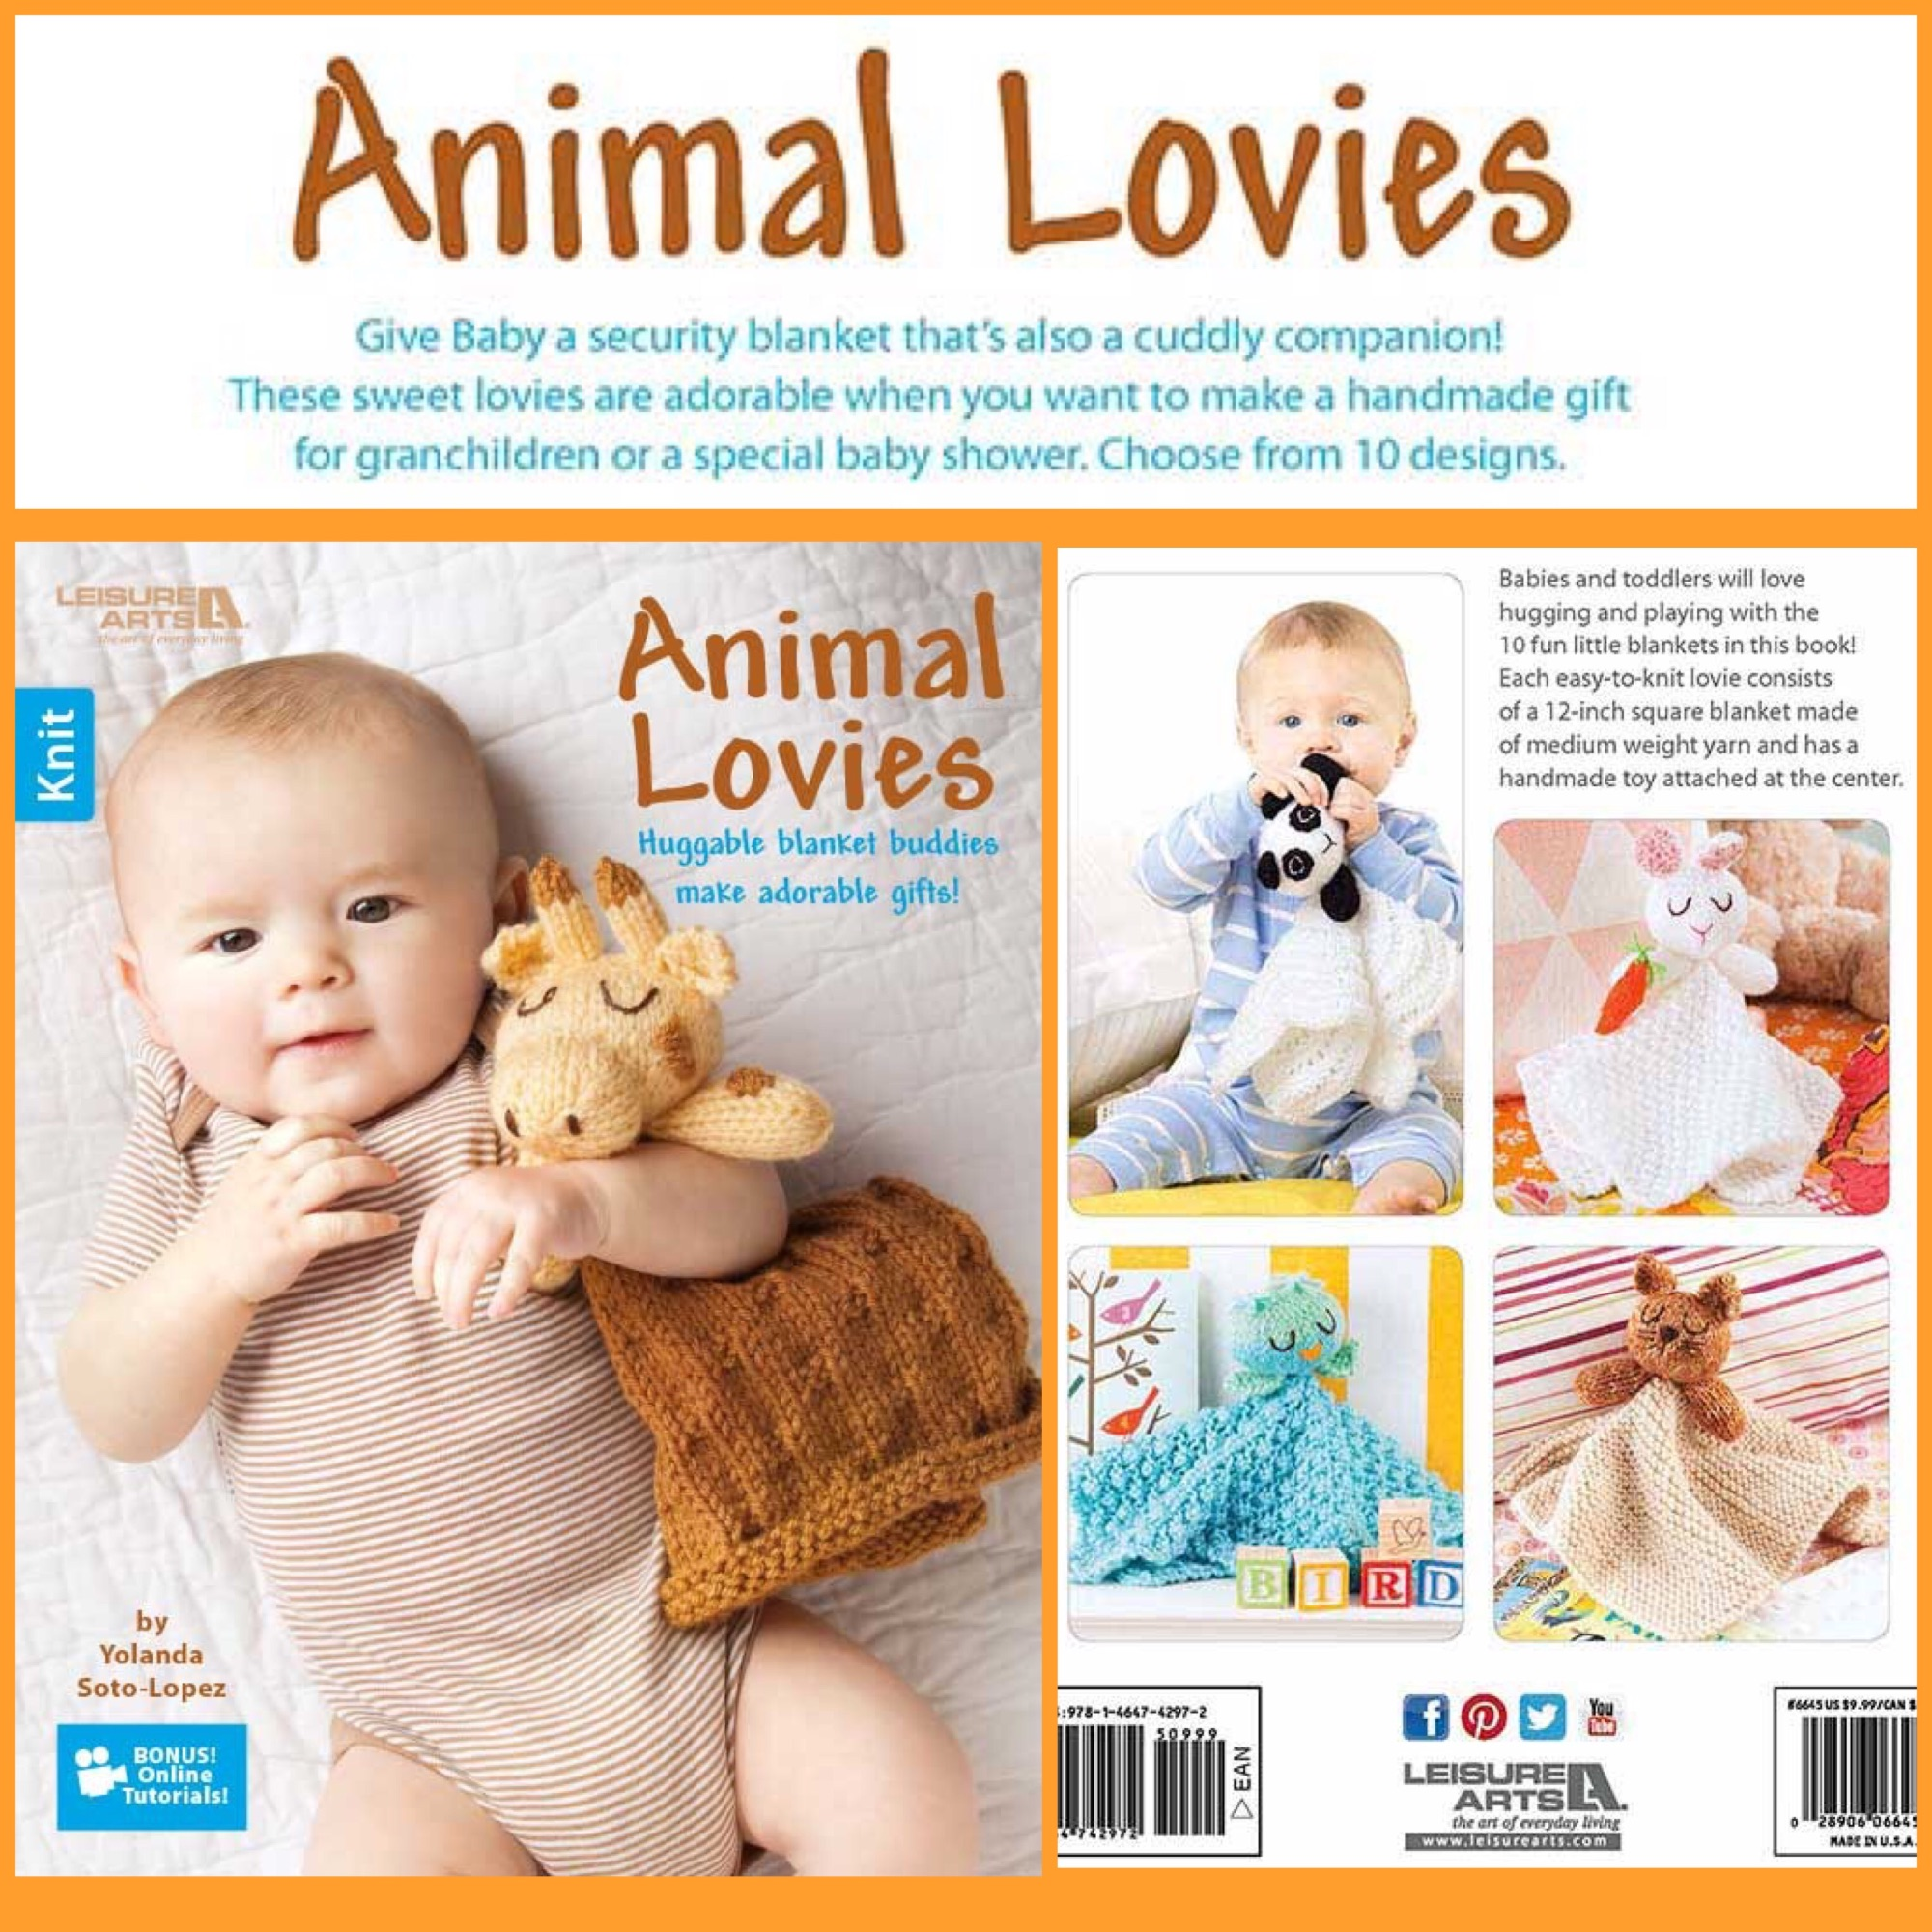 Leisure Arts Animal Lovies book by Yolanda Soto-Lopez. Baby blankets buddie